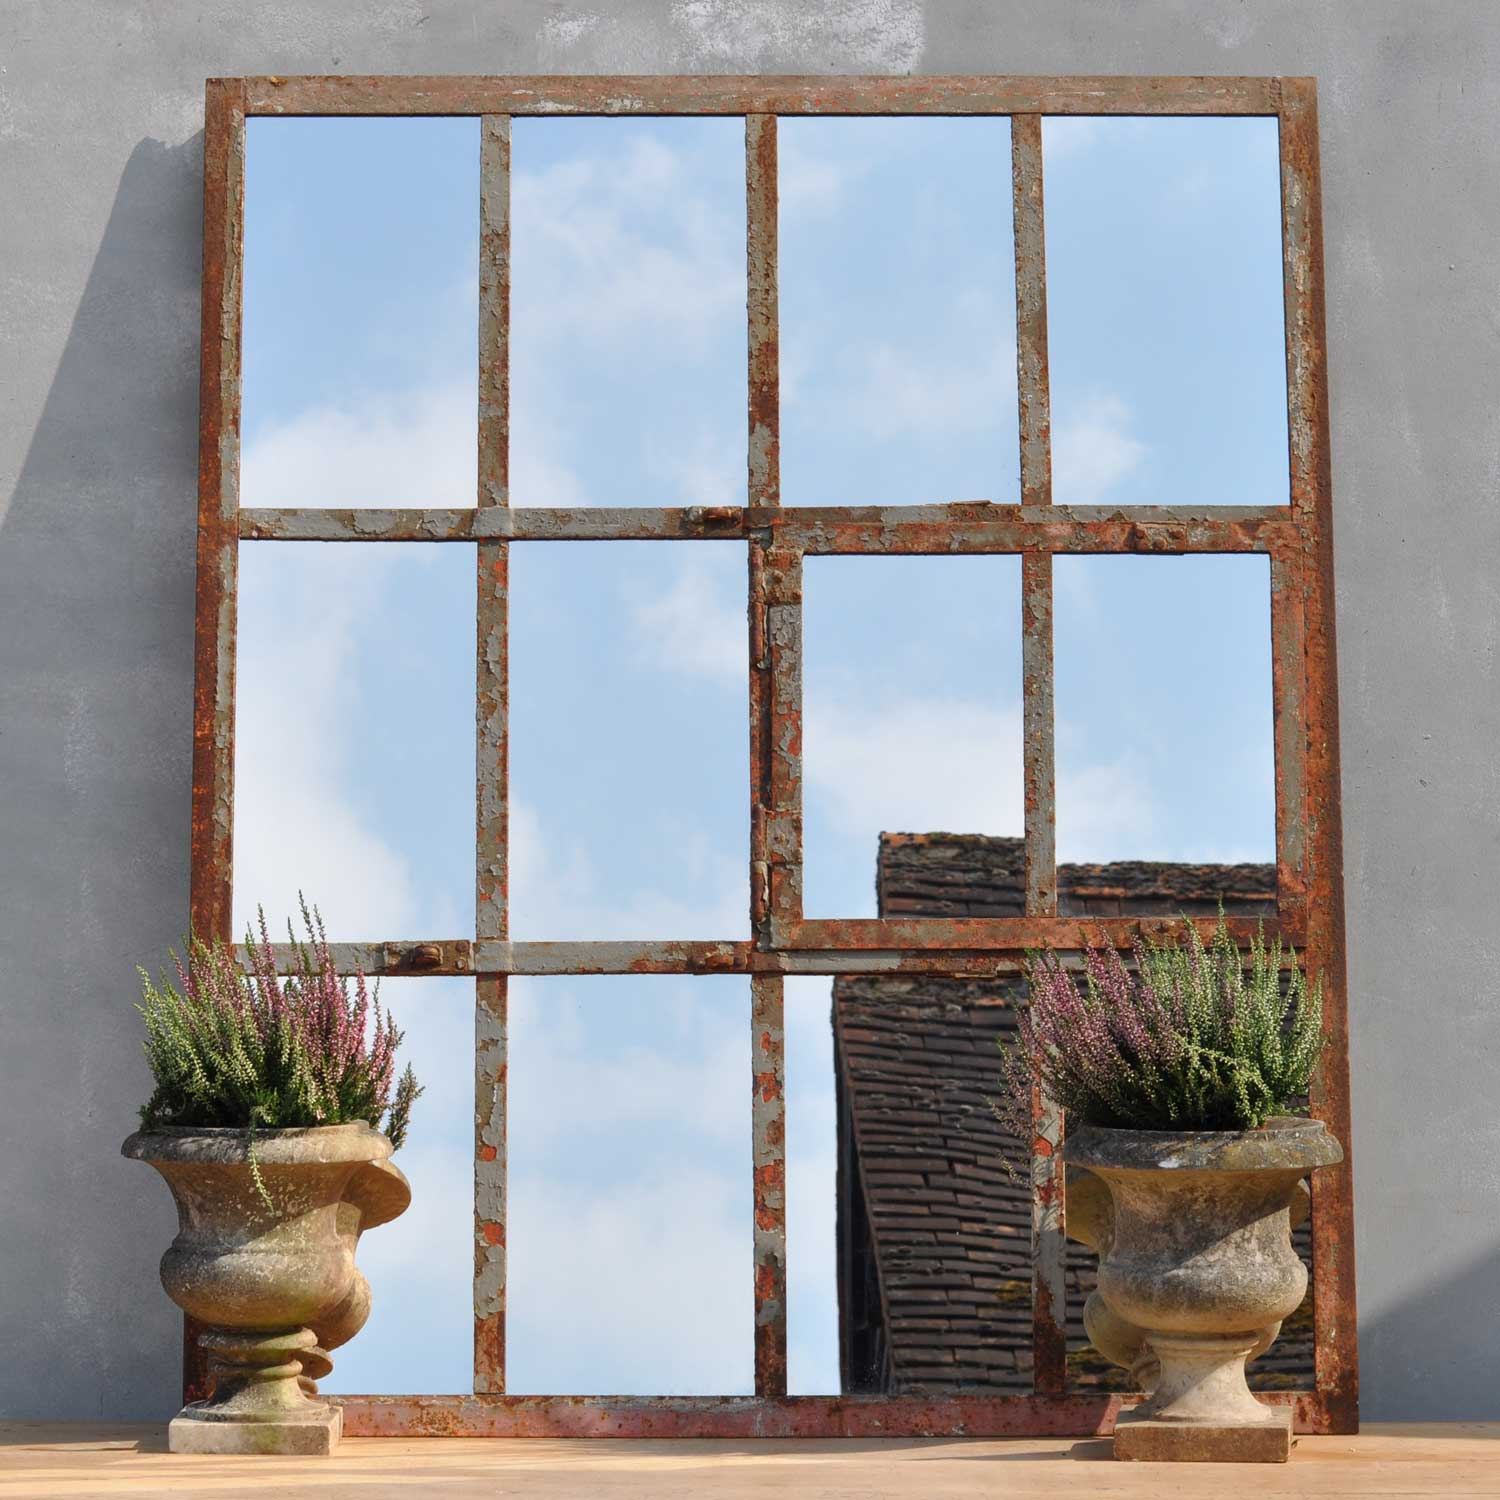 Industrial Cast Iron Warehouse Window Mirror Oblong Home